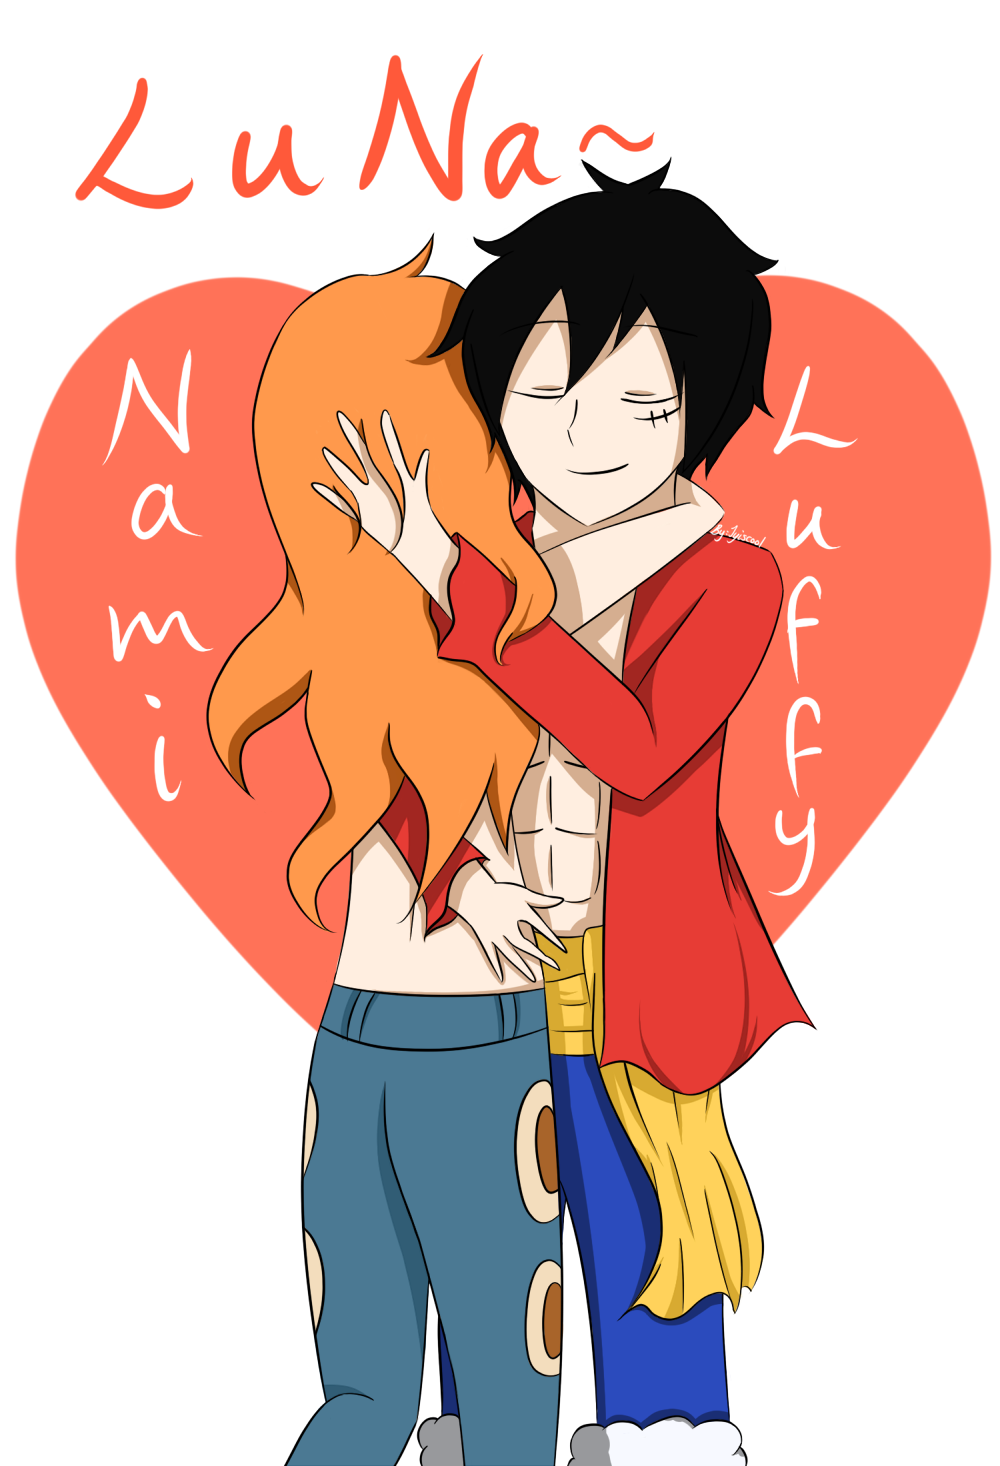 One Piece - Luffy x Nami by Jyiscool